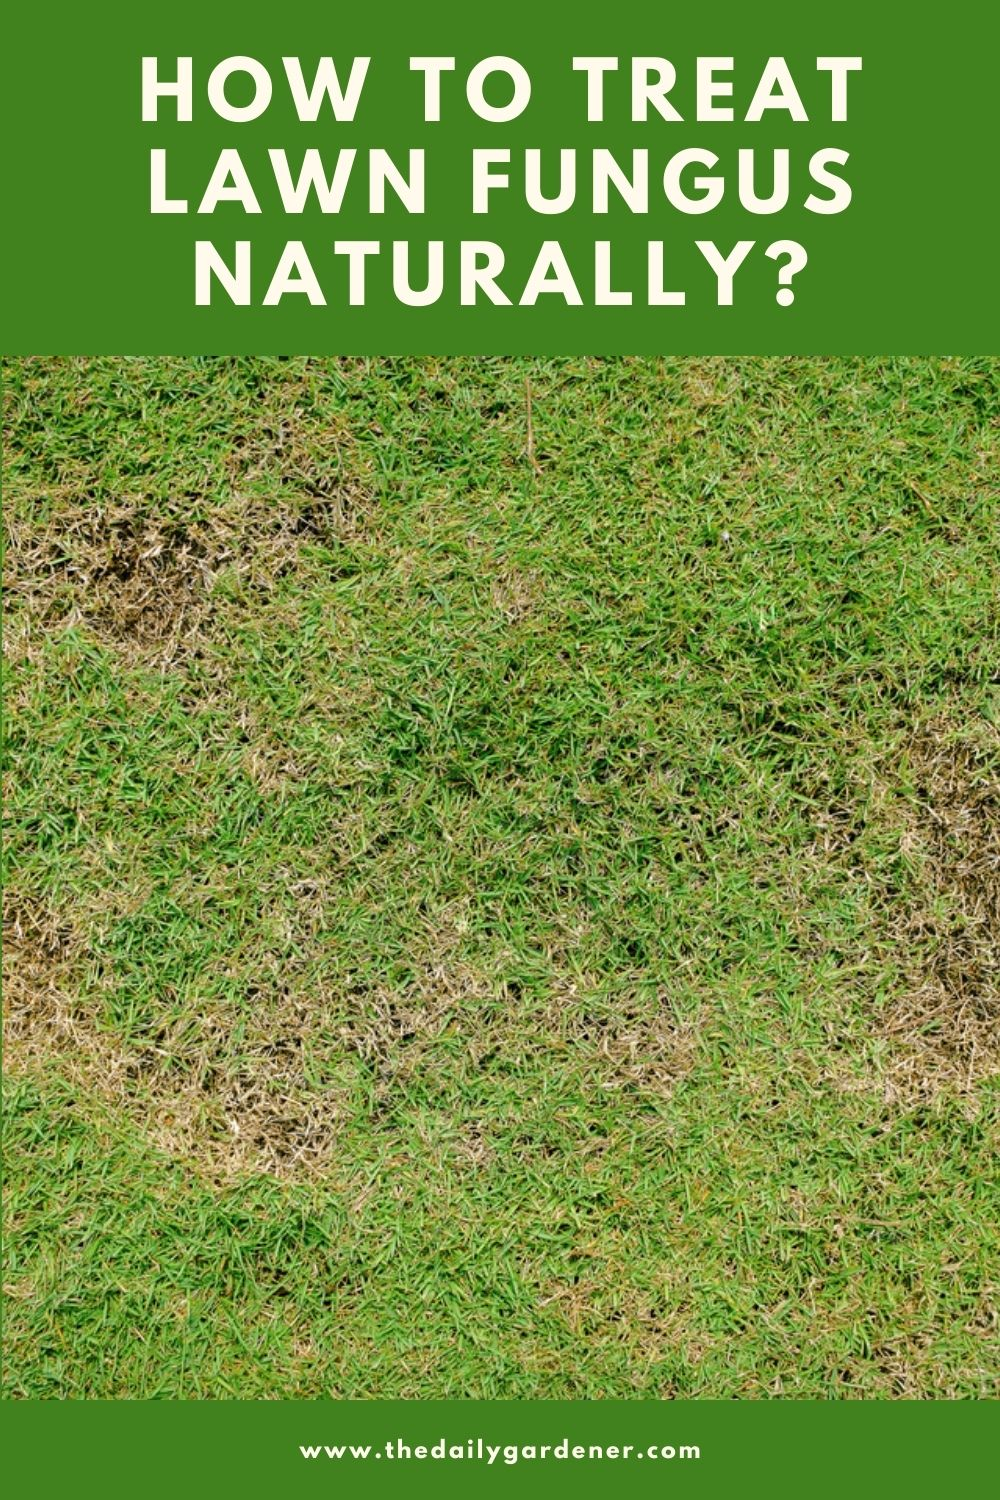 How to Treat Lawn Fungus Naturally 2